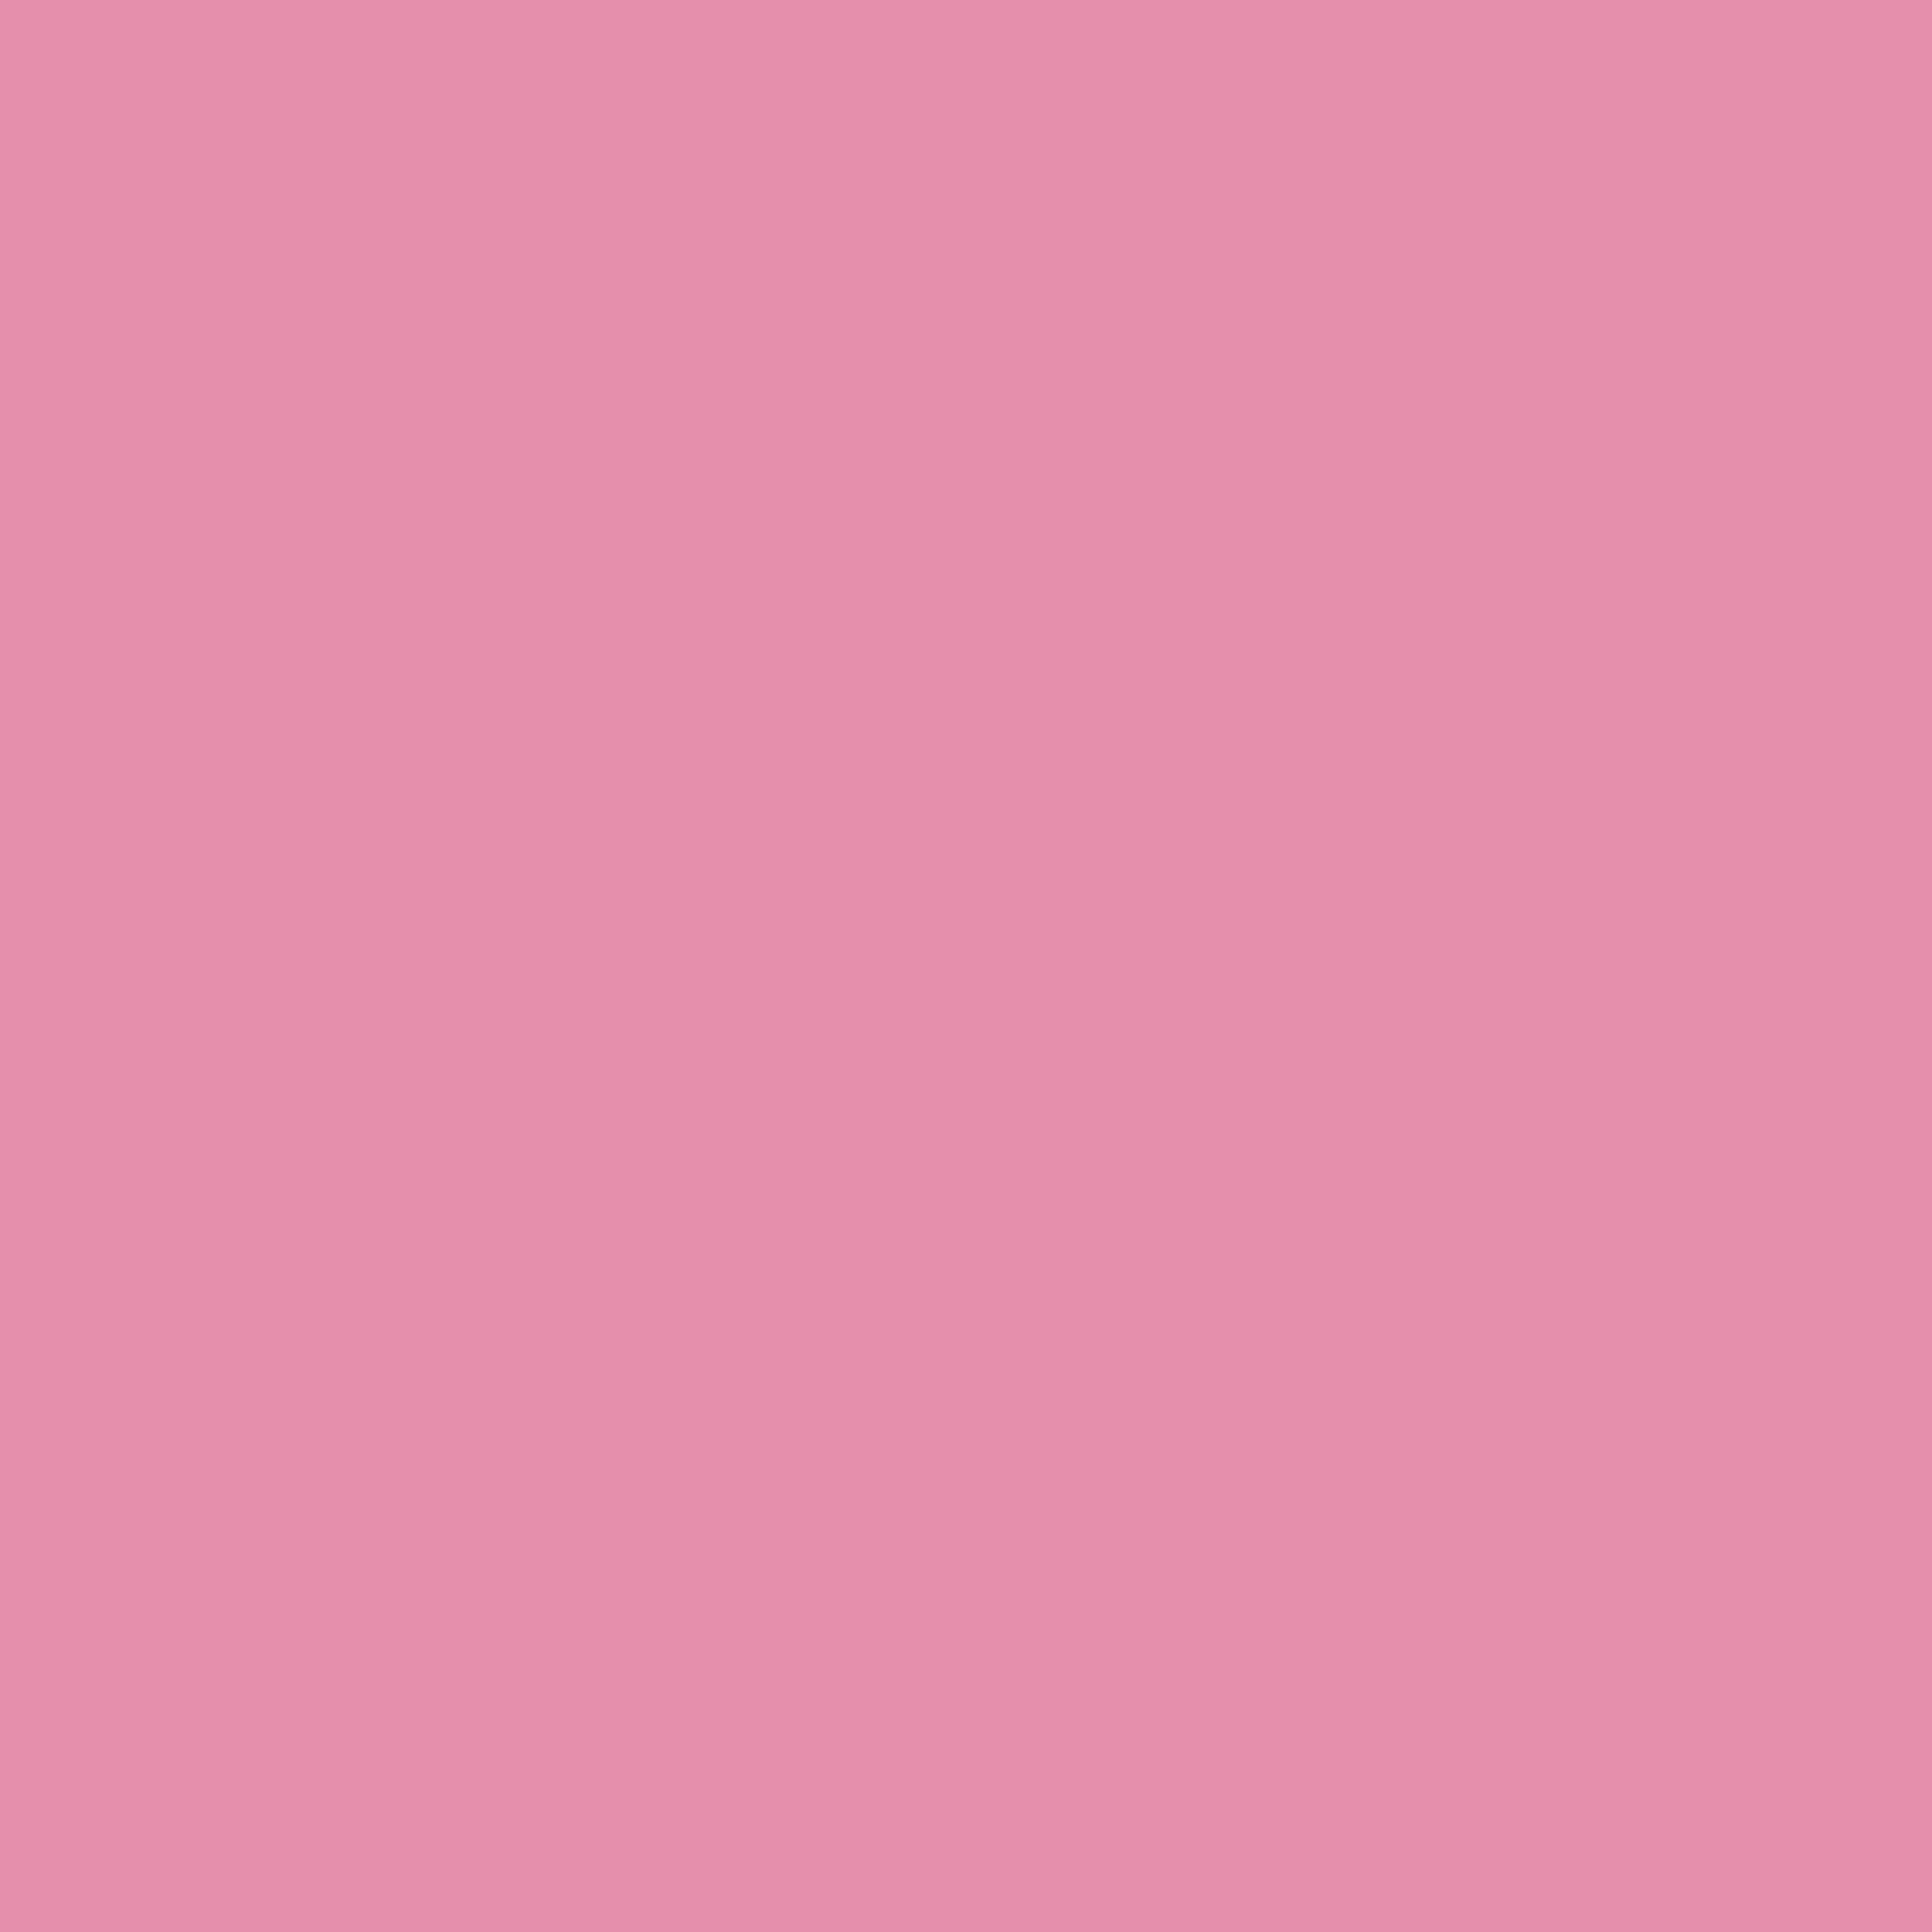 3600x3600 Charm Pink Solid Color Background 3600x3600